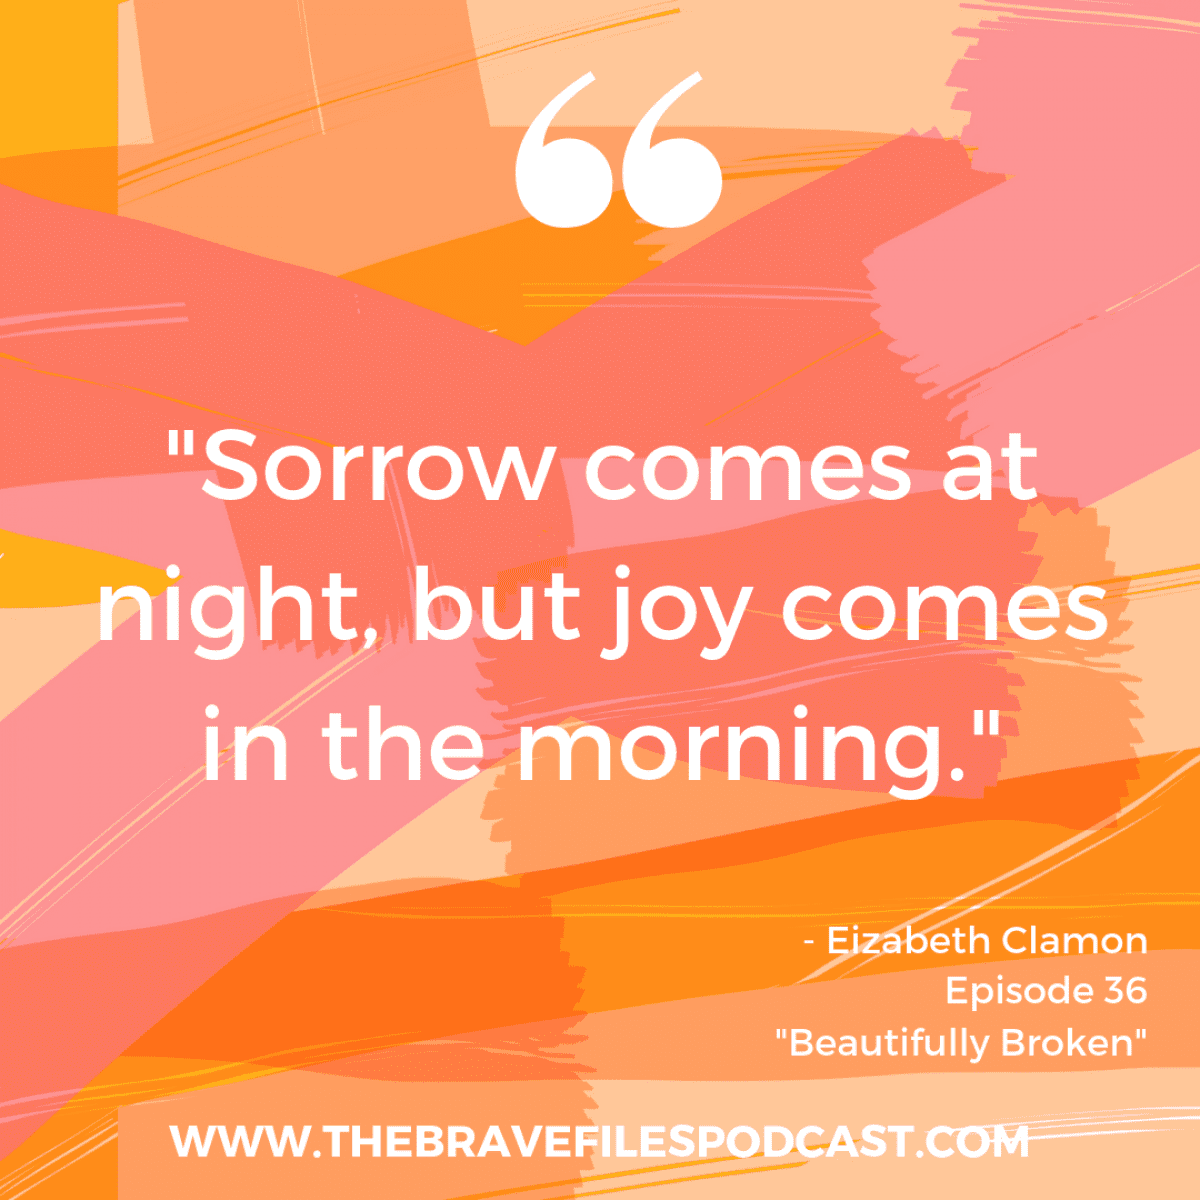 Elizabeth Clamon is Beautifully Broken and she shares her story of survival on The Brave Files Podcast